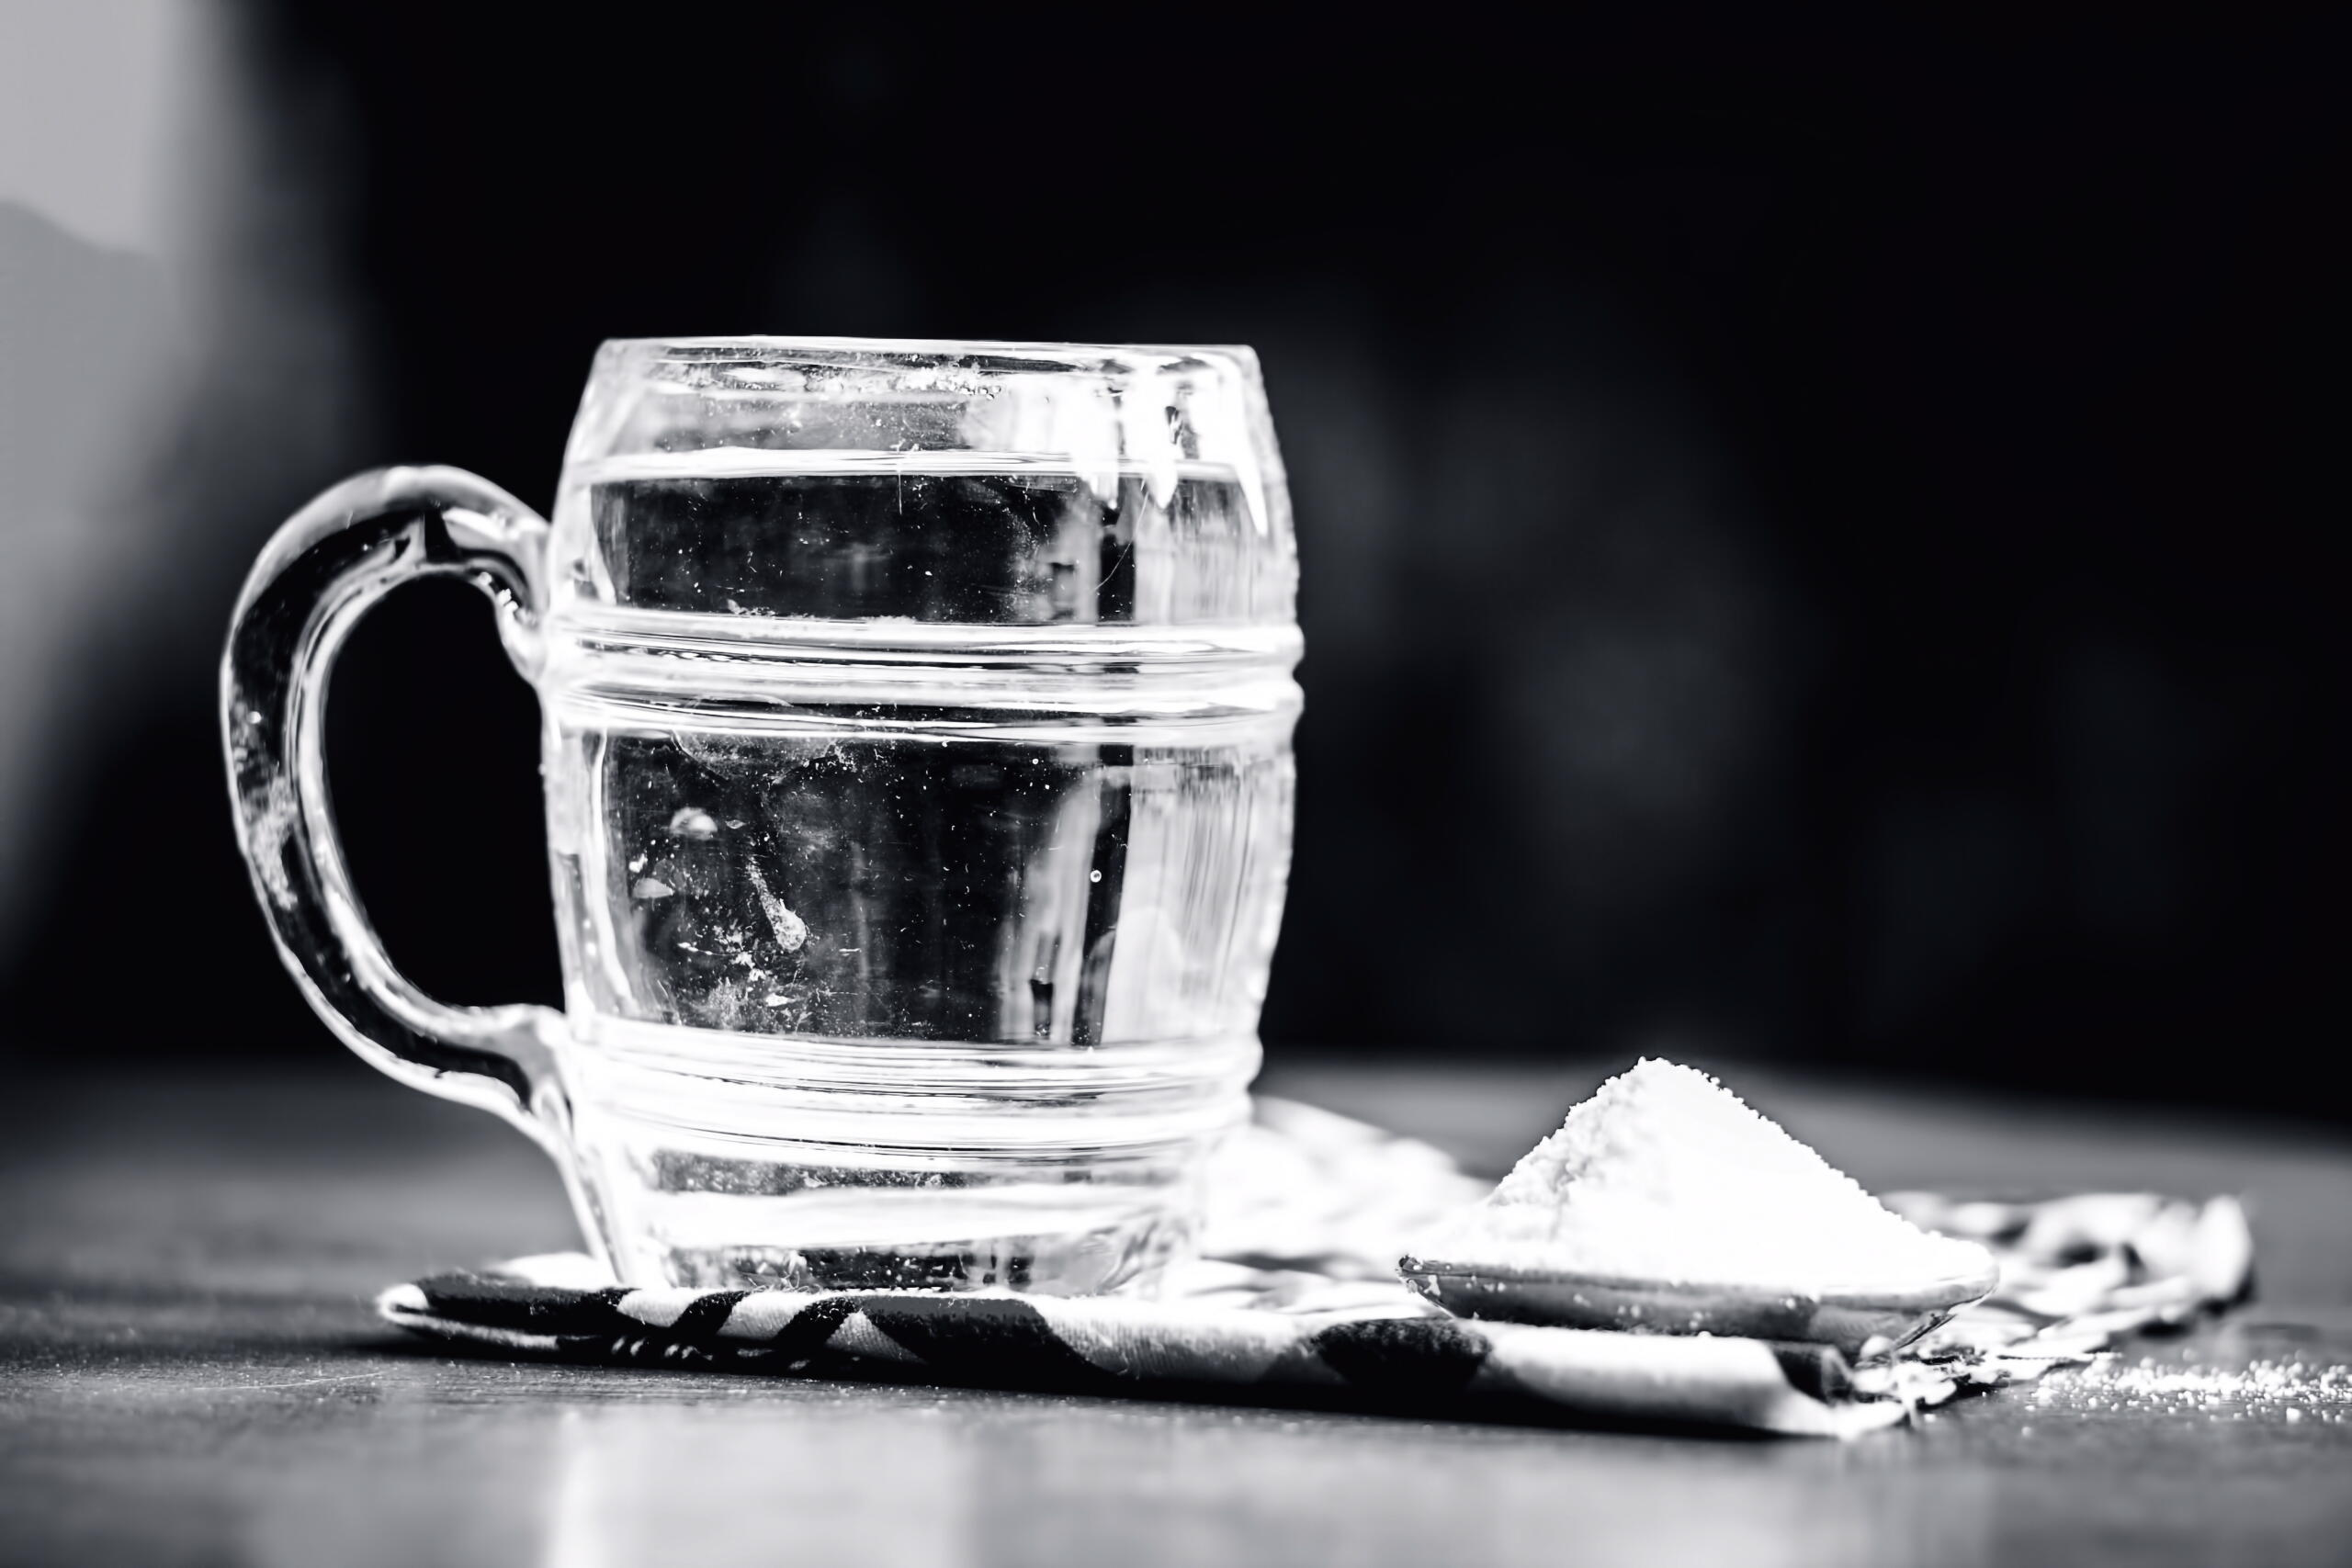 Alkaline water is made to neutralize excessive body acid, it will cause discomfort if consume daily